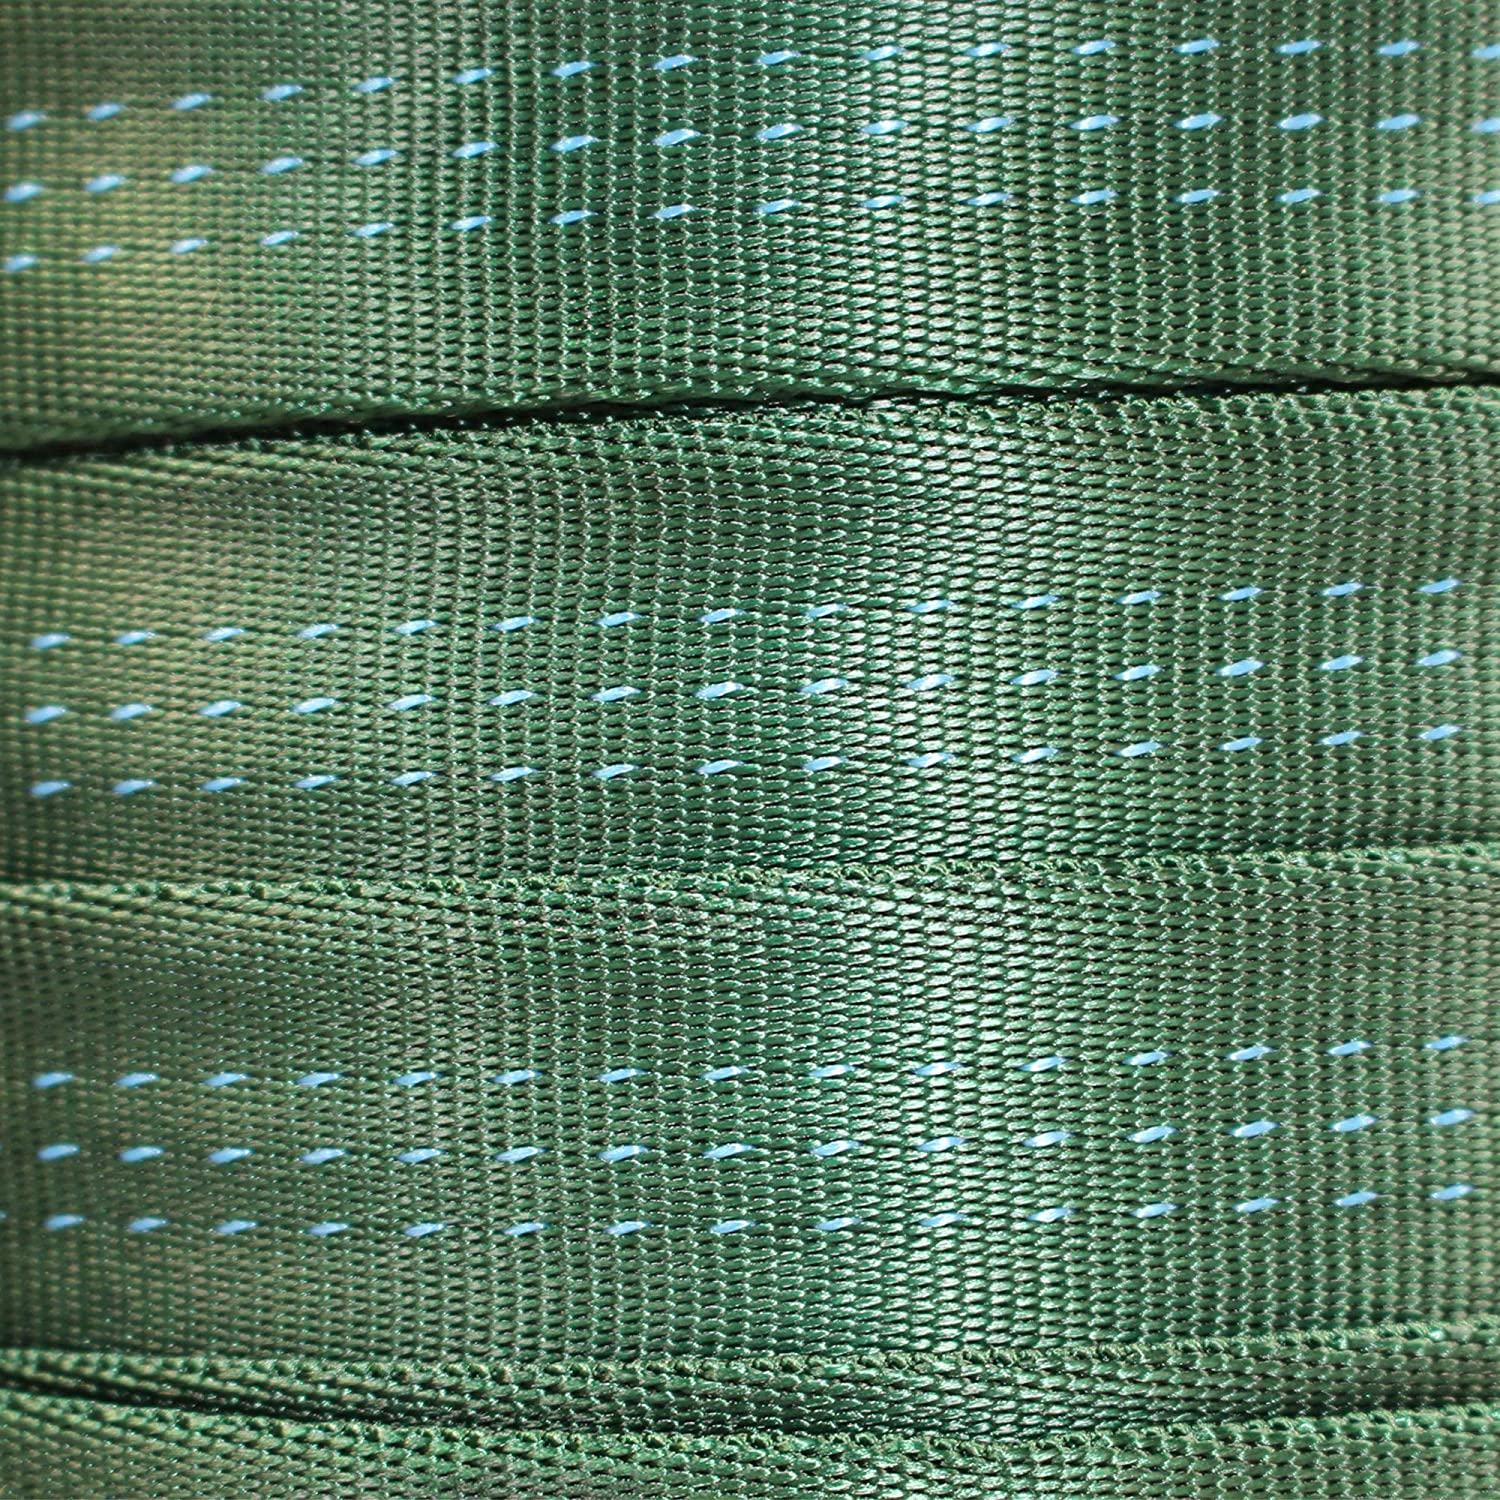 Climbing 1 in Nylon Webbing for Climbers Rock Work /& Firefighting BlueWater Tubular Webbing 1 inch Heavy Duty Strap for Rescue 1 Yard - 100 Yards Harnesses Tube // Tubular Climbing Webbing